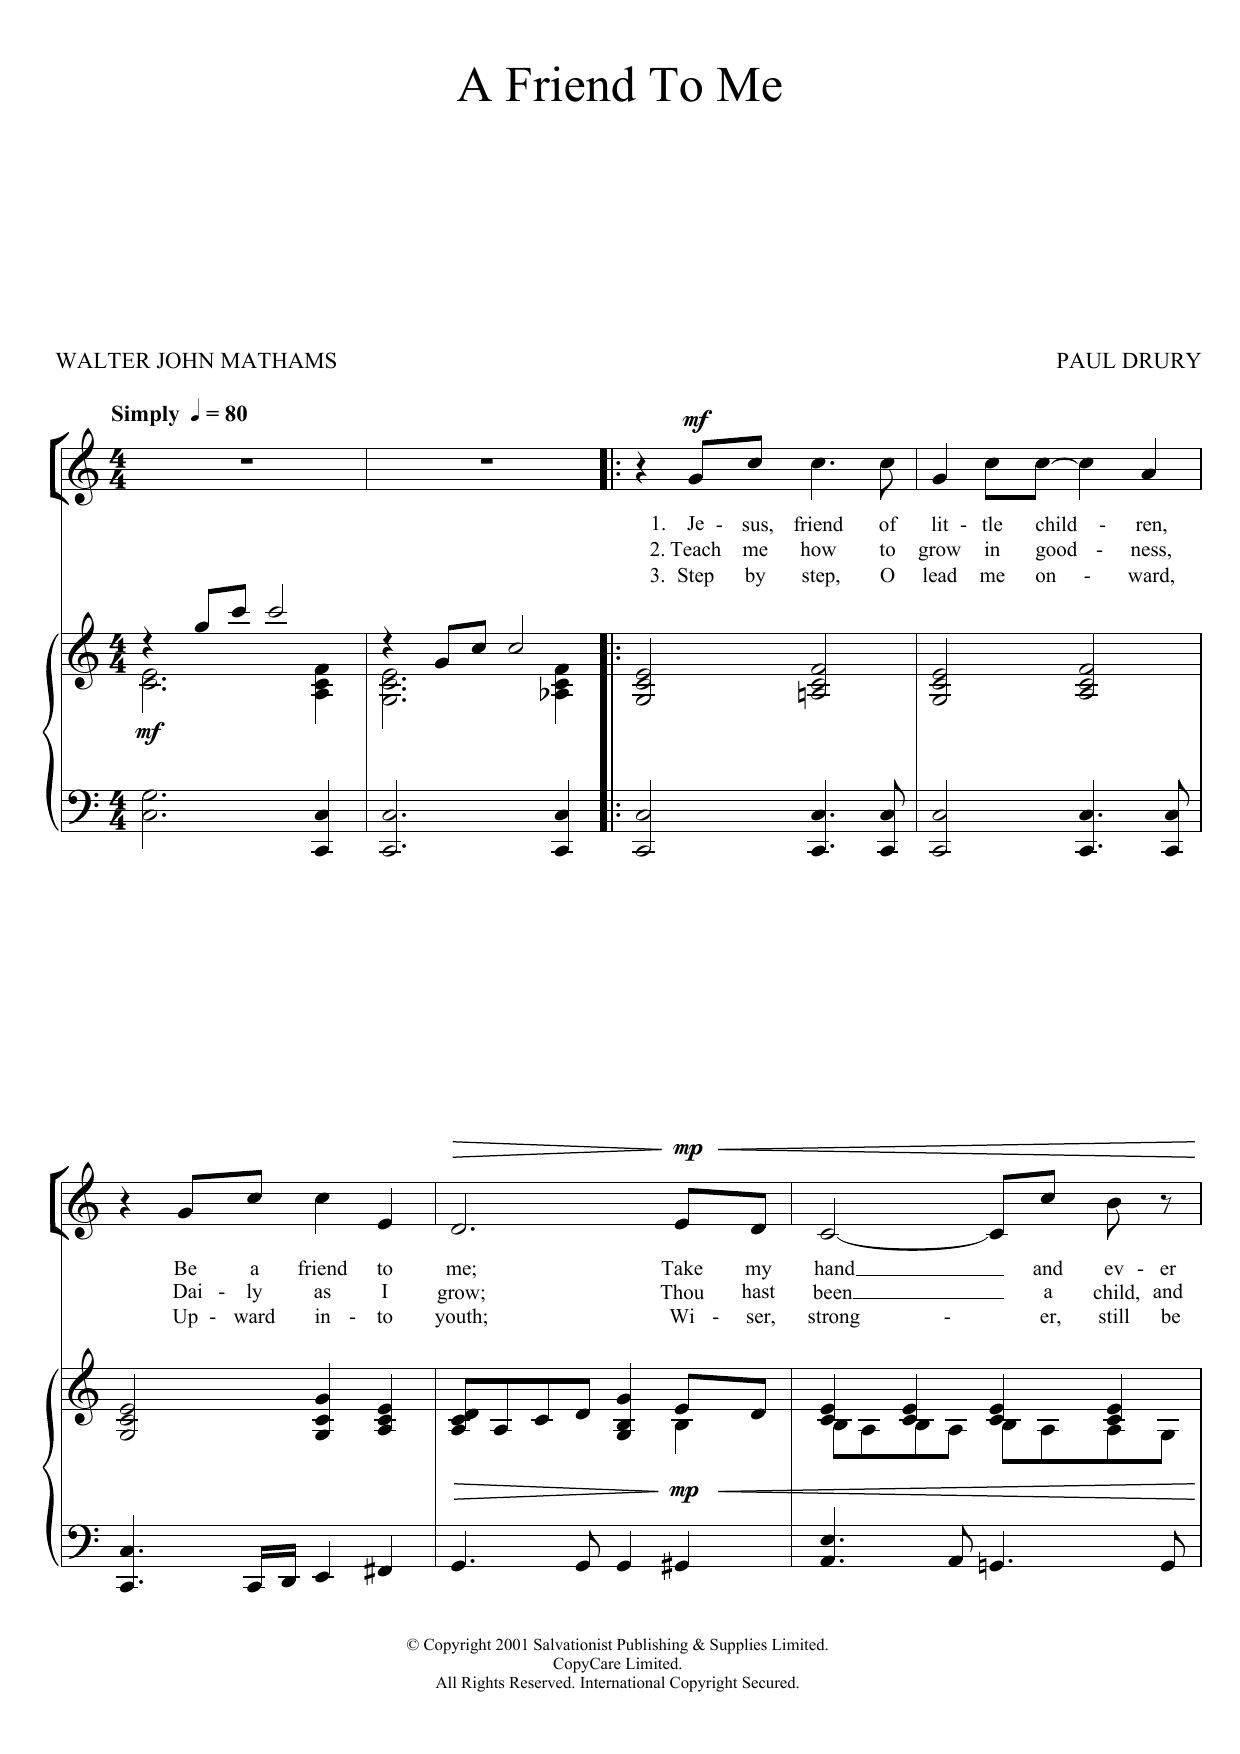 A Friend To Me Sheet Music